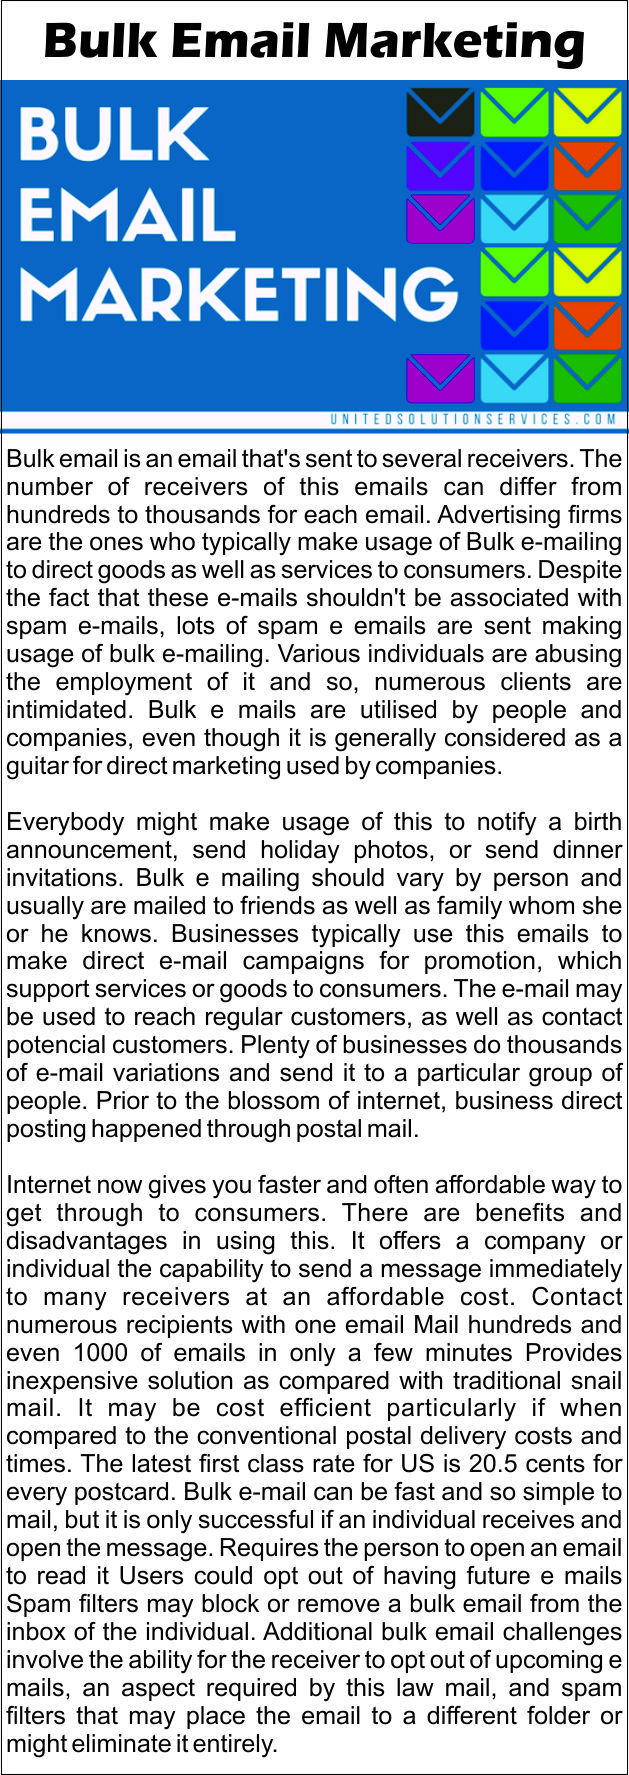 #blog #bulk #email #emailing  #additional #mails #spam #filters  #direct #email #campaigns #emails  #mail #hundreds  #contact #potencial #customers #united #solution #services #USS